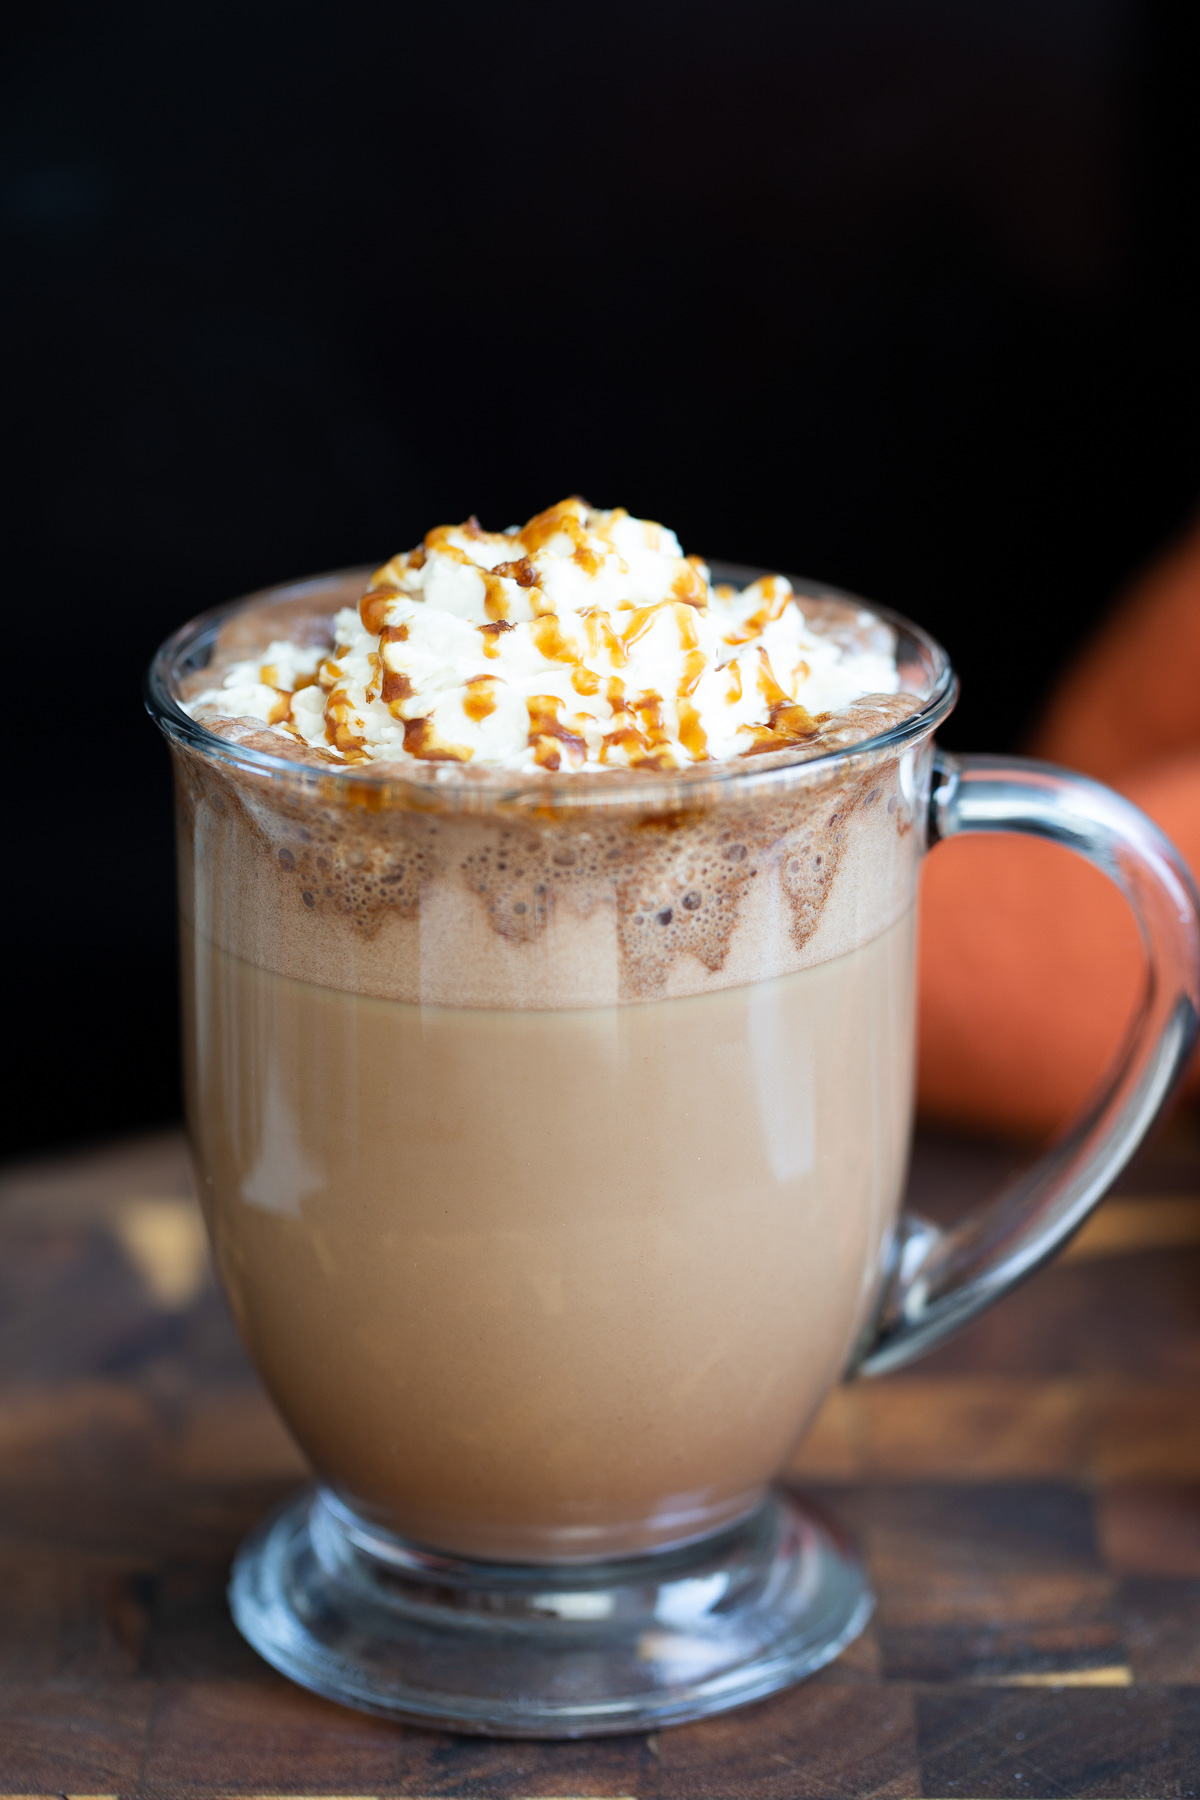 a glass of Starbucks Copycat Vegan Caramel Mocha